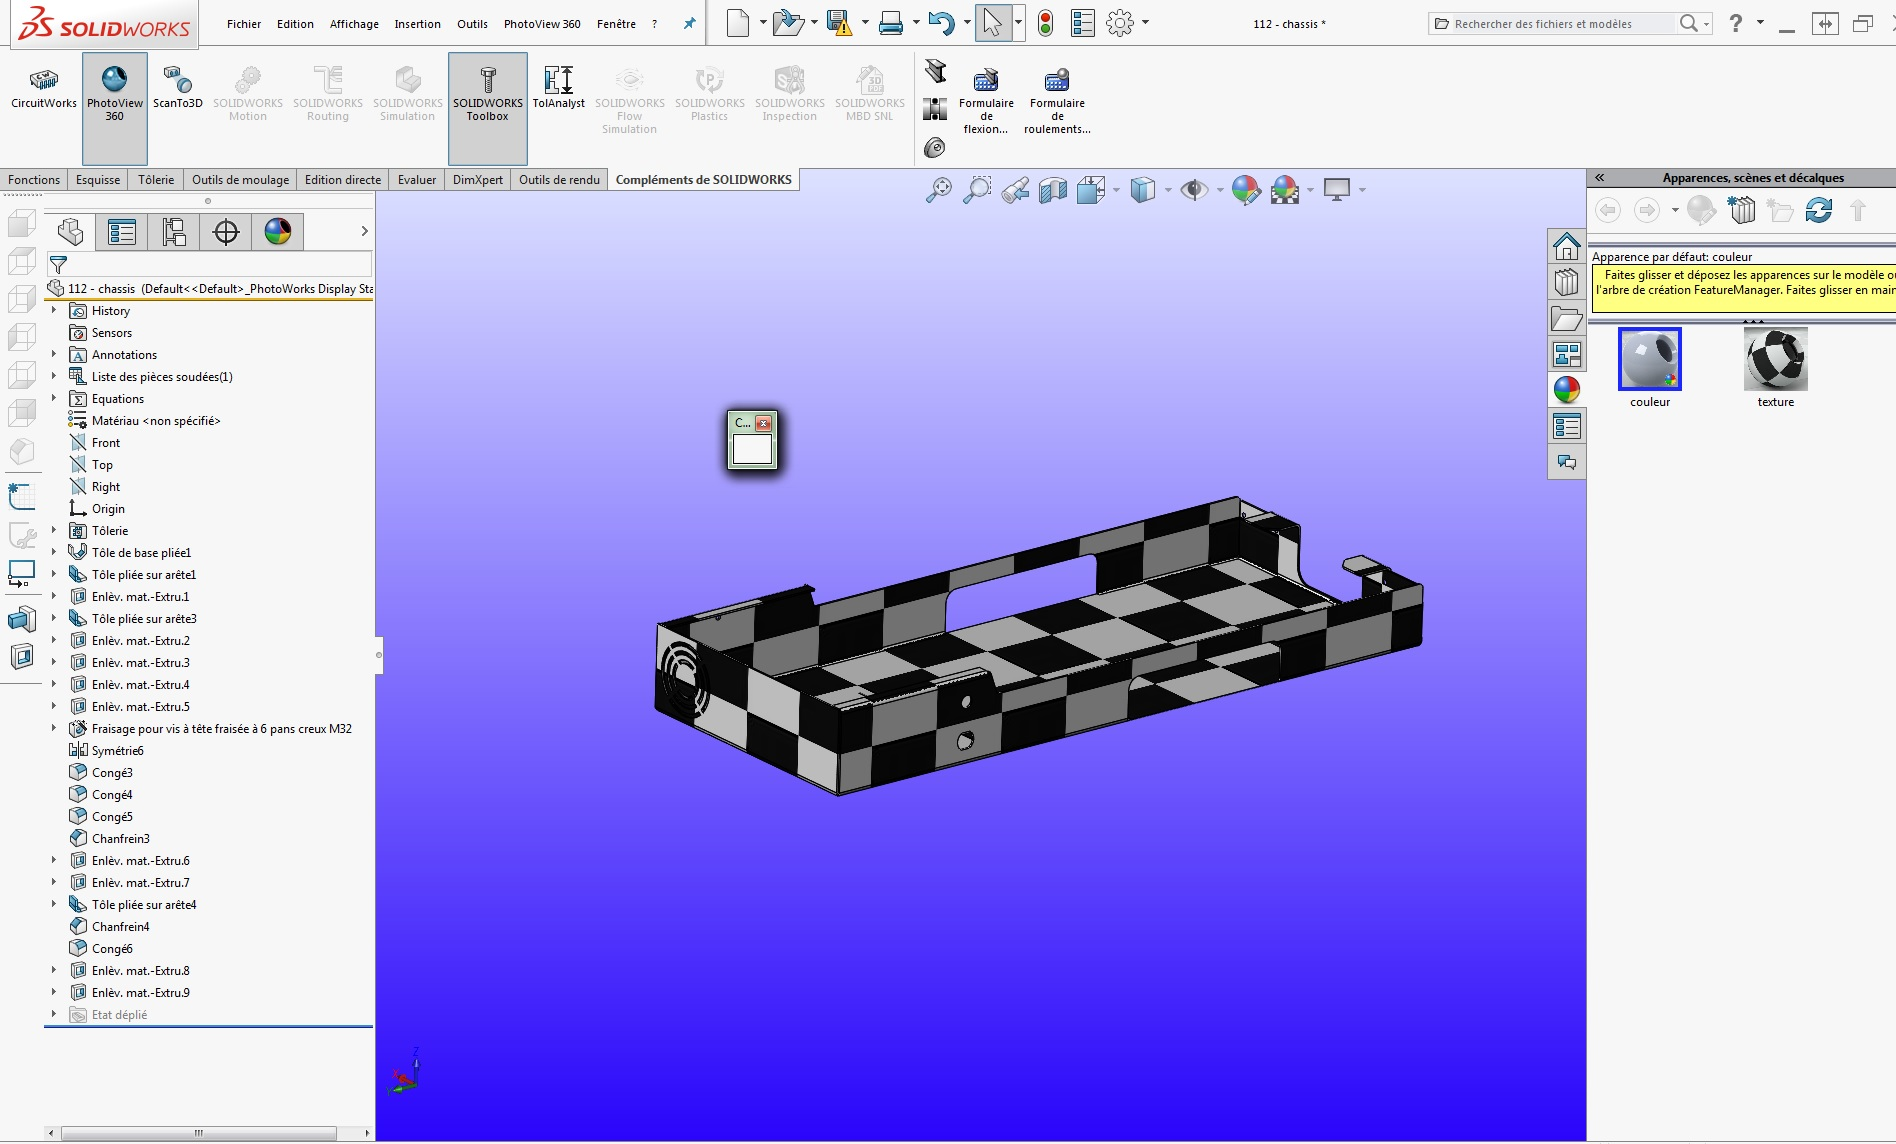 apparences solidworks